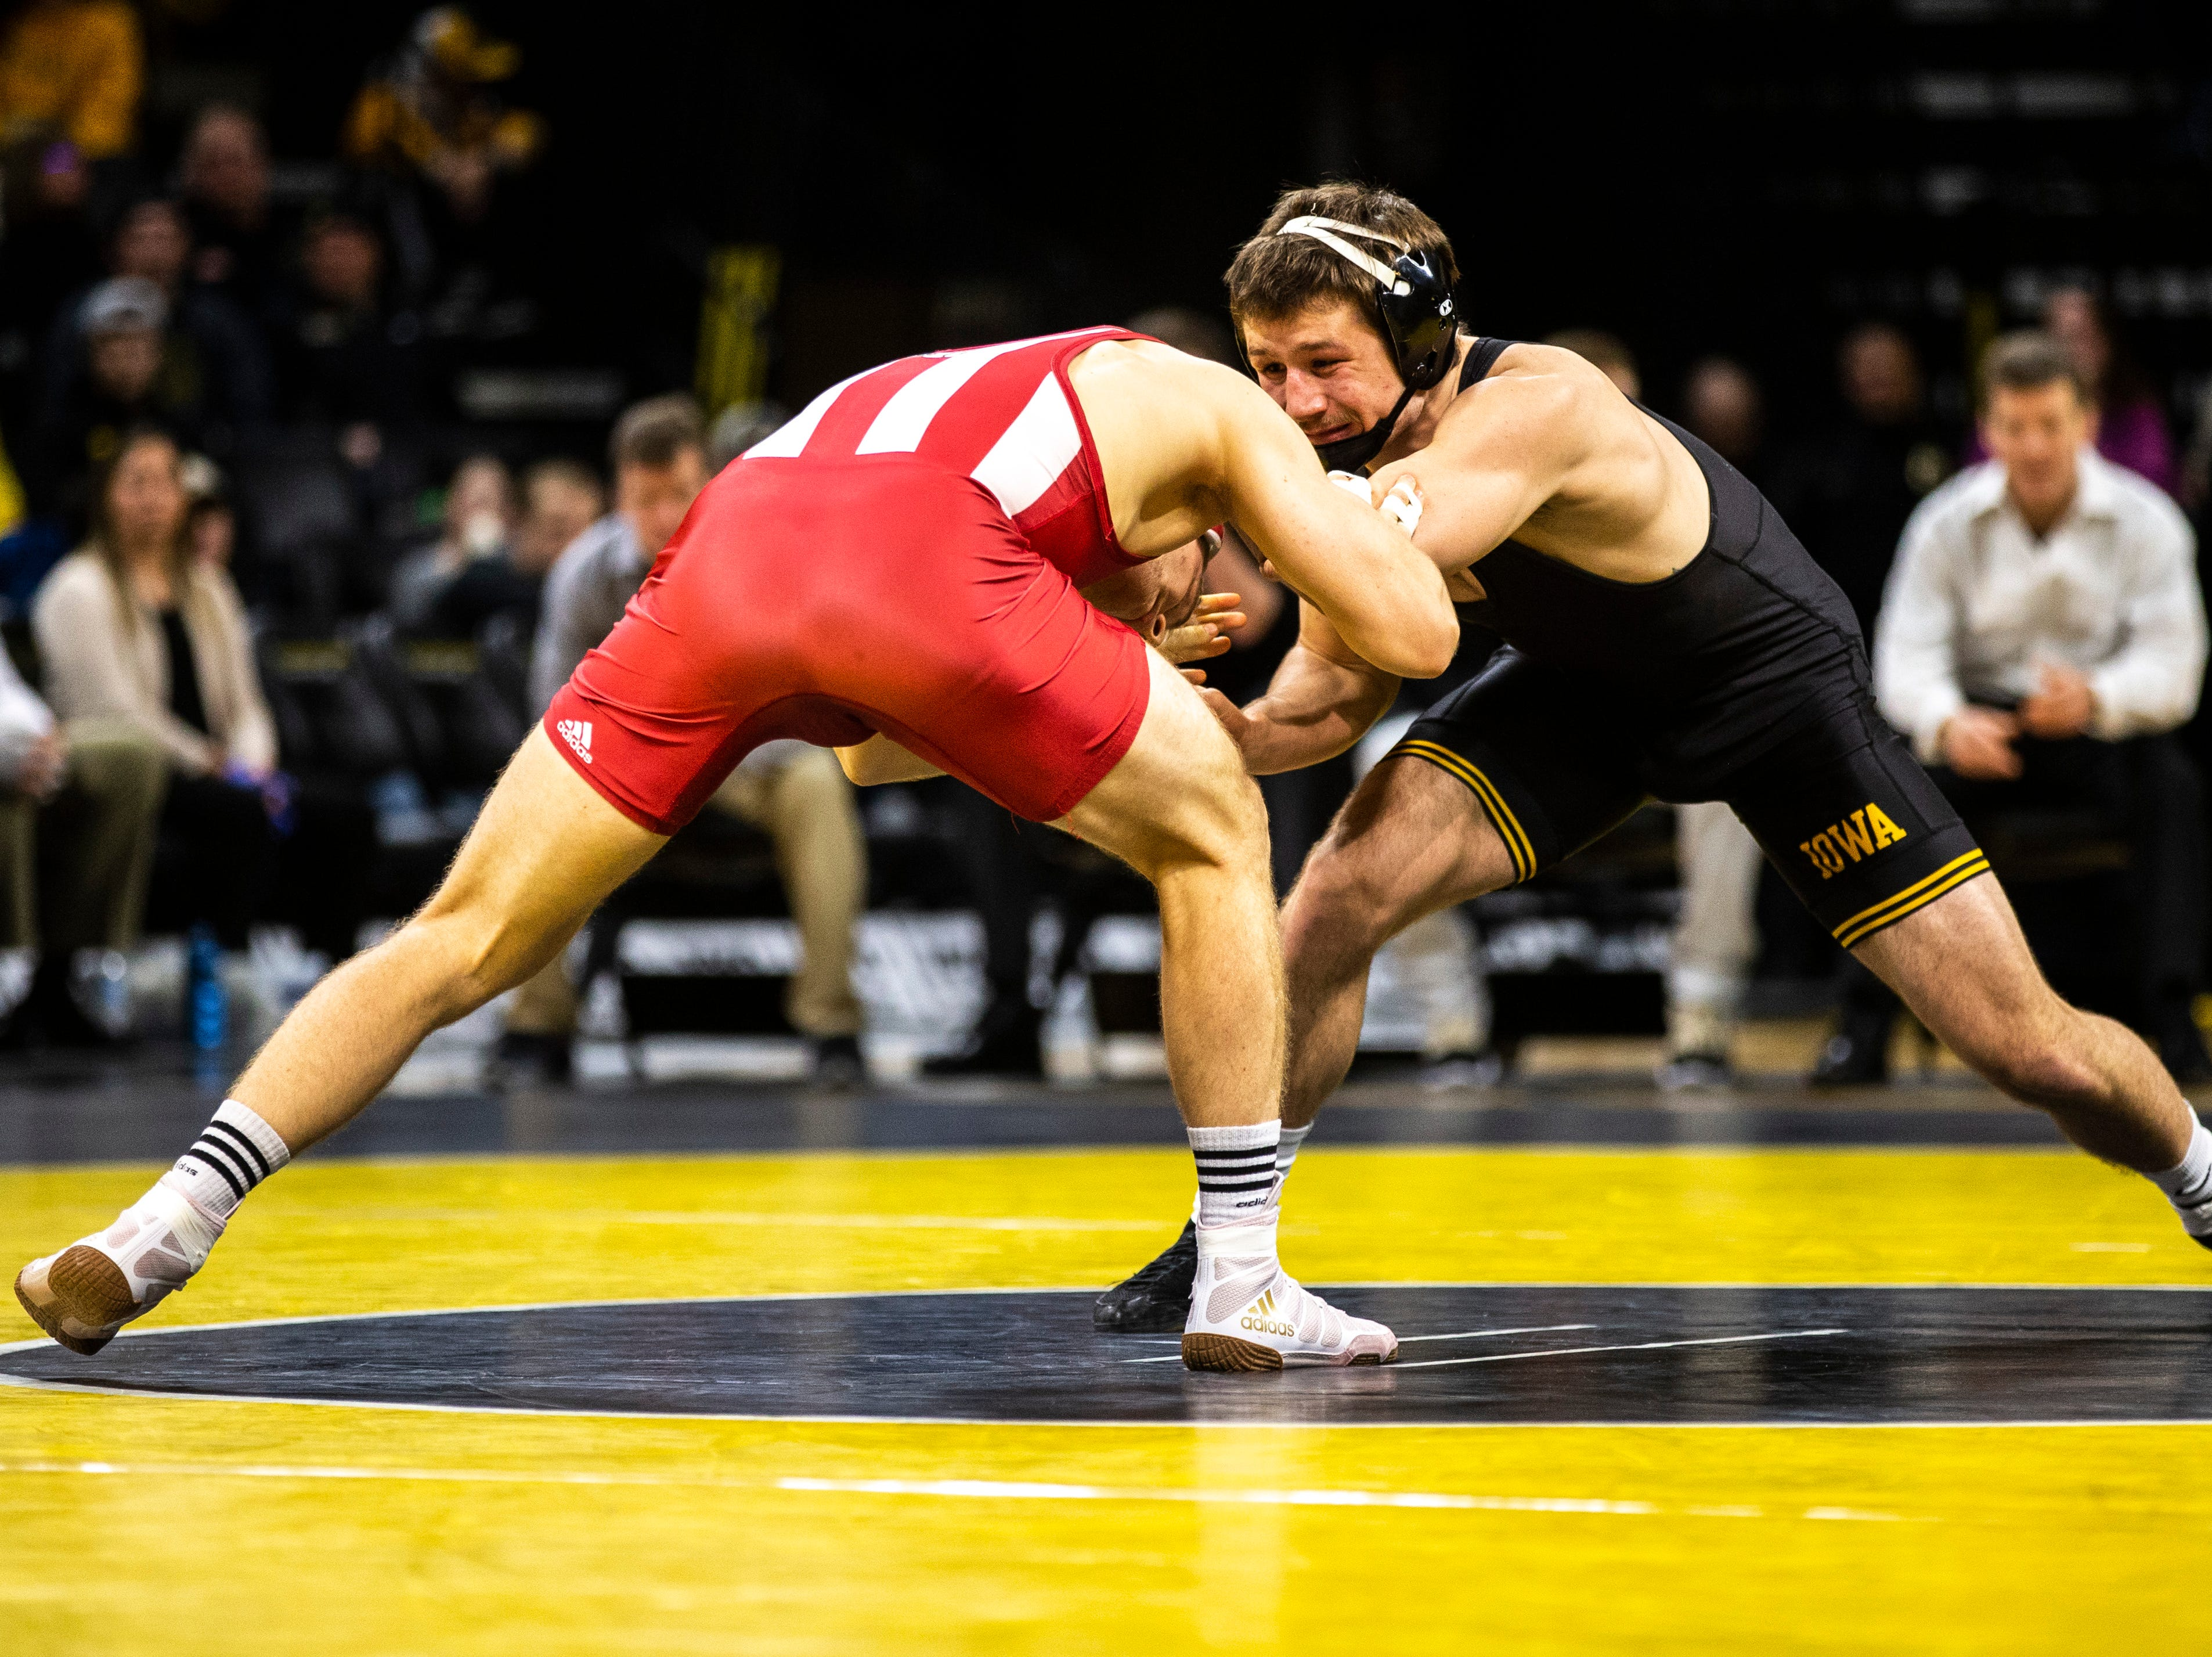 Iowa's Jeren Glosser, right, wrestles Indiana's Jake Danishek at 157 during a NCAA Big Ten Conference wrestling dual on Friday, Feb. 15, 2019 at Carver-Hawkeye Arena in Iowa City, Iowa.